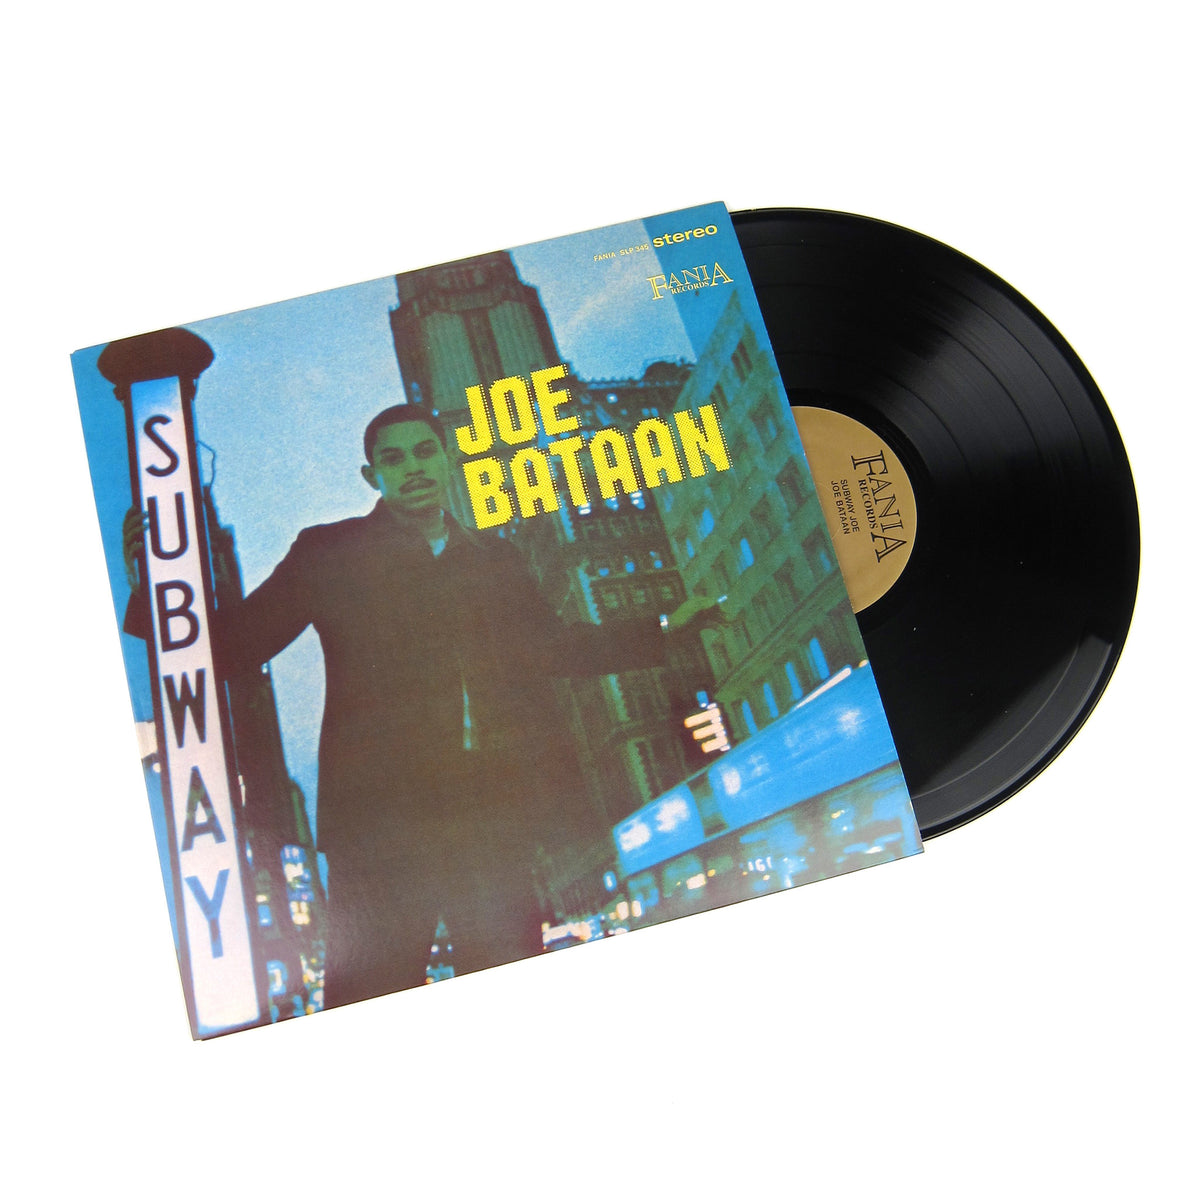 Joe Bataan: Subway Joe Vinyl LP